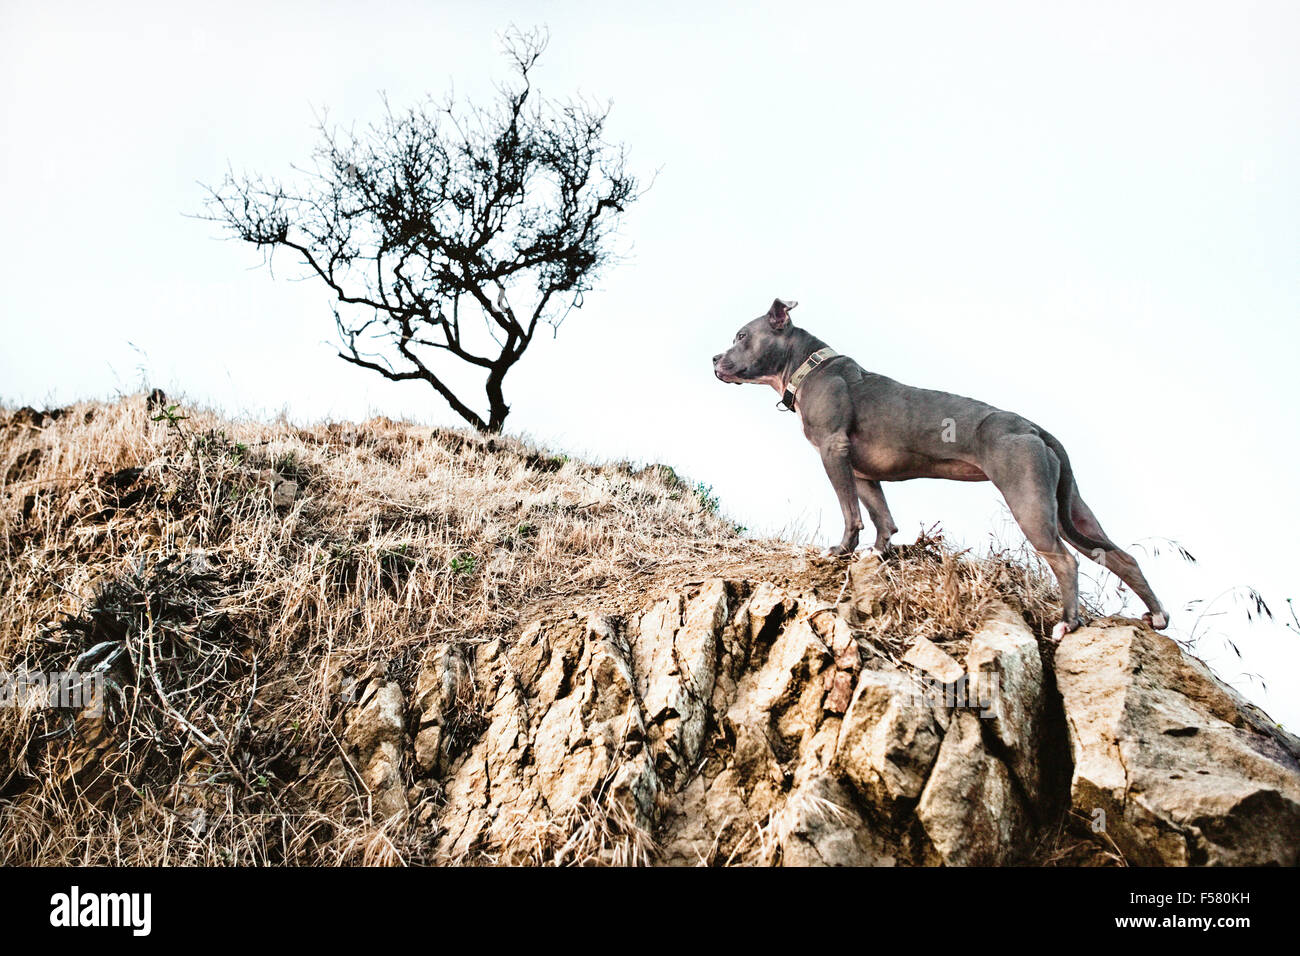 heroic posture of a dog climbing a dry rocky hillside with a lone barren tree in background - Stock Image